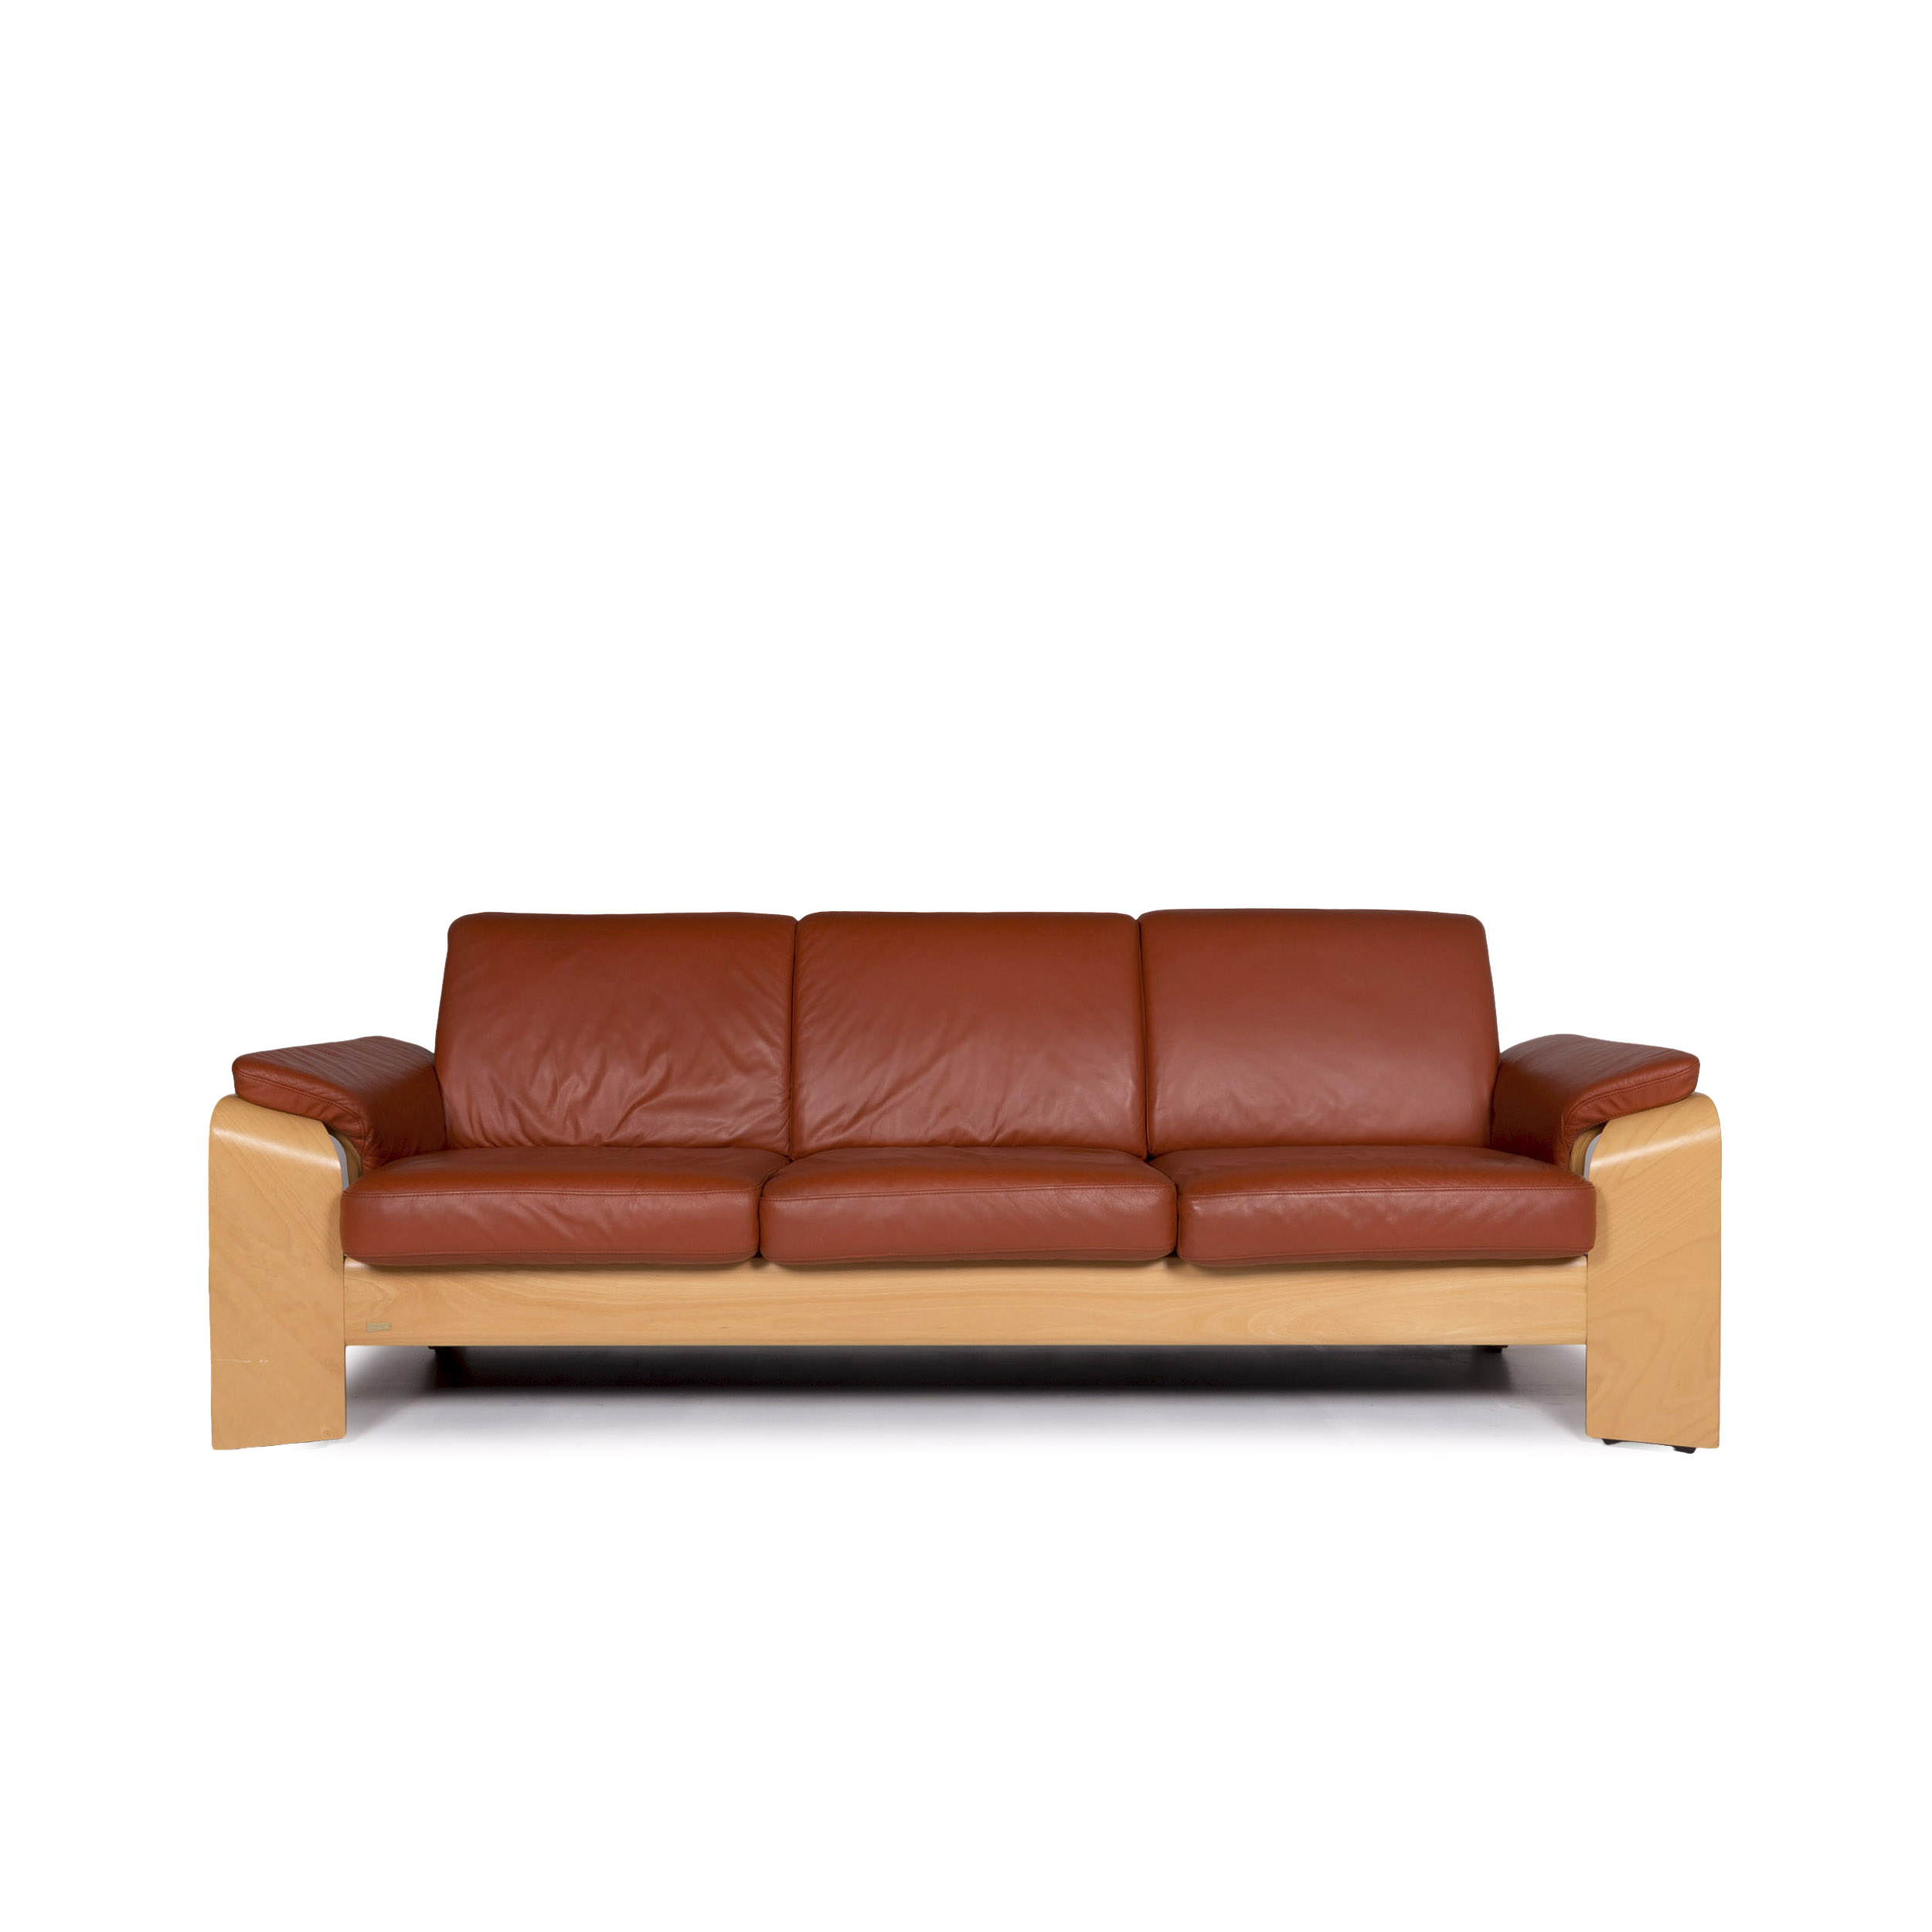 Full Size of Stressless Stella Sofa 2 Seater Leather Canada Sale Ebay Review Wave Couches Second Hand For Sofas And Chairs Uk Couch Cost Pegasus Leder Terrakotta Braun Sofa Stressless Sofa